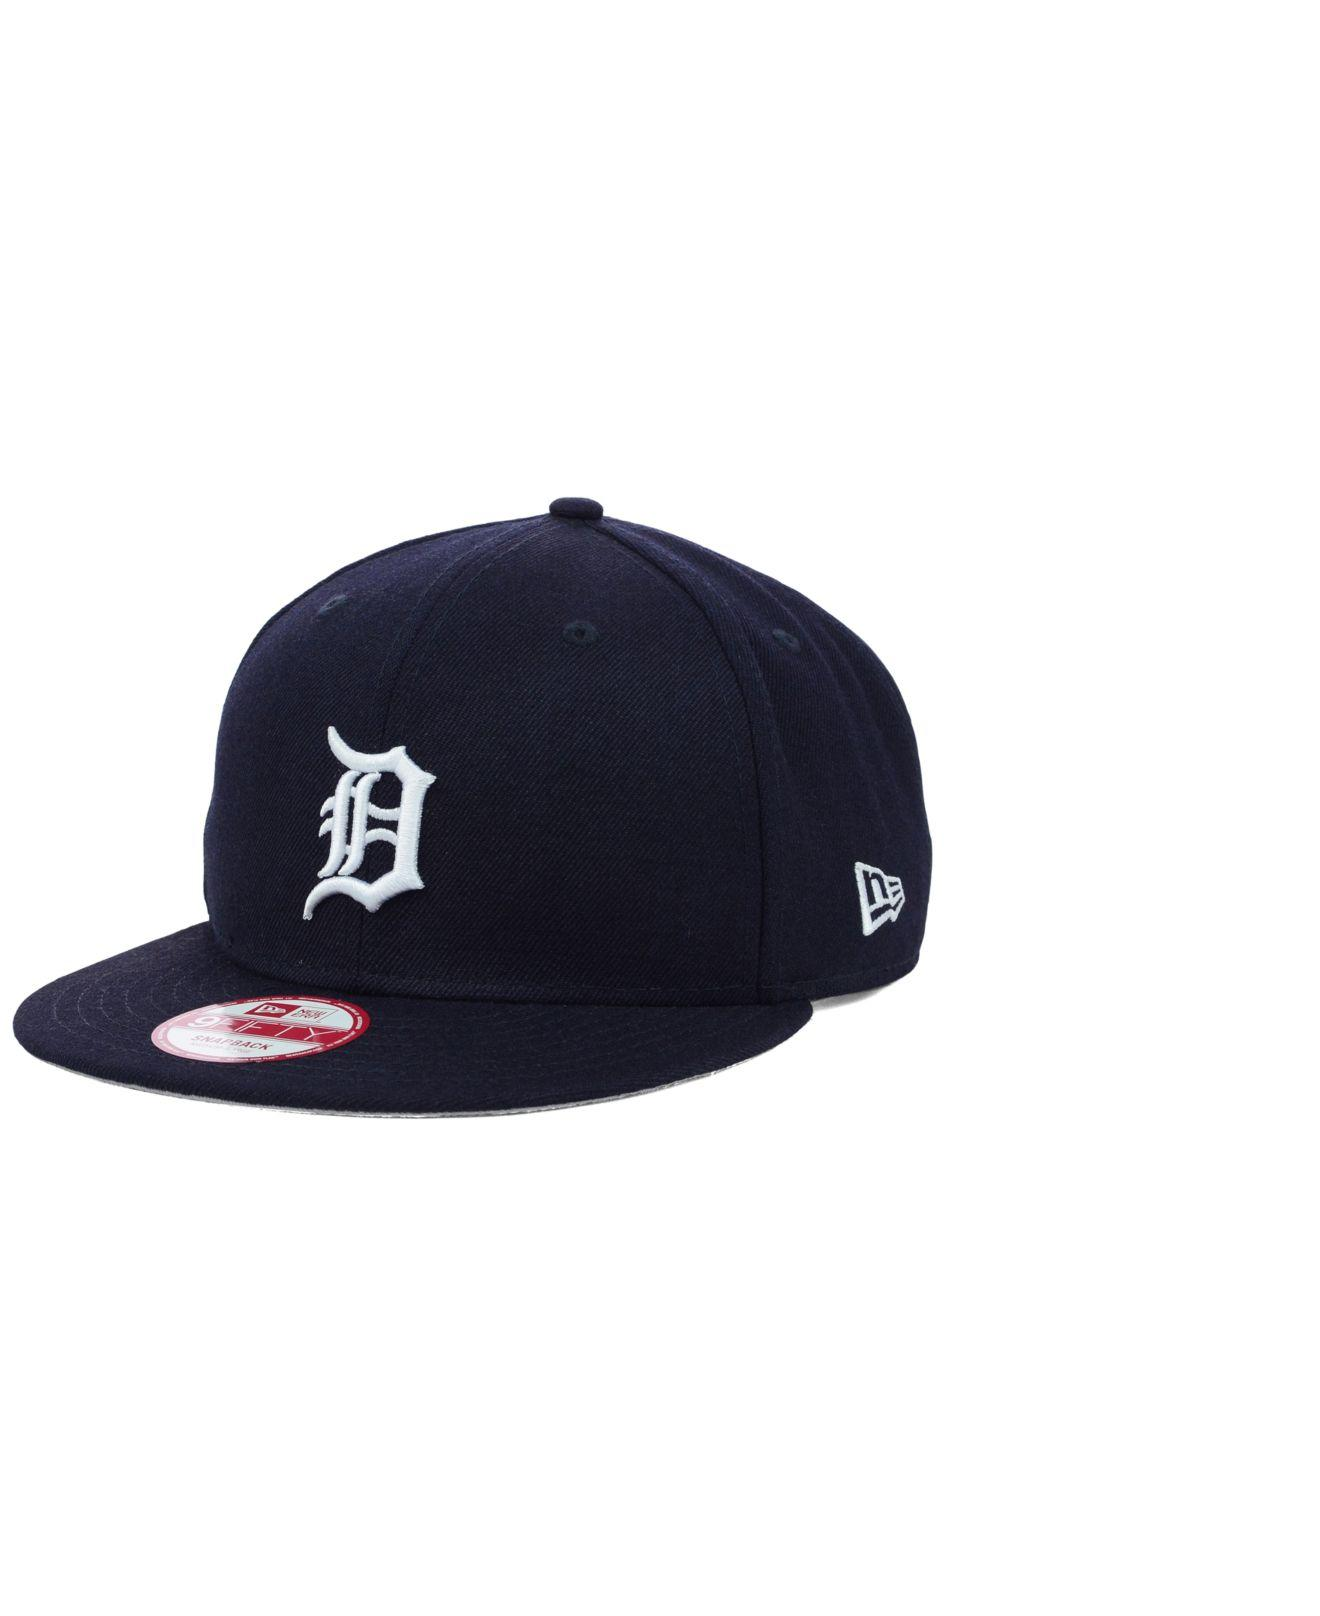 cheapest cheapest price best quality KTZ Wool Detroit Tigers 2 Tone Link 9fifty Snapback Cap in Navy ...